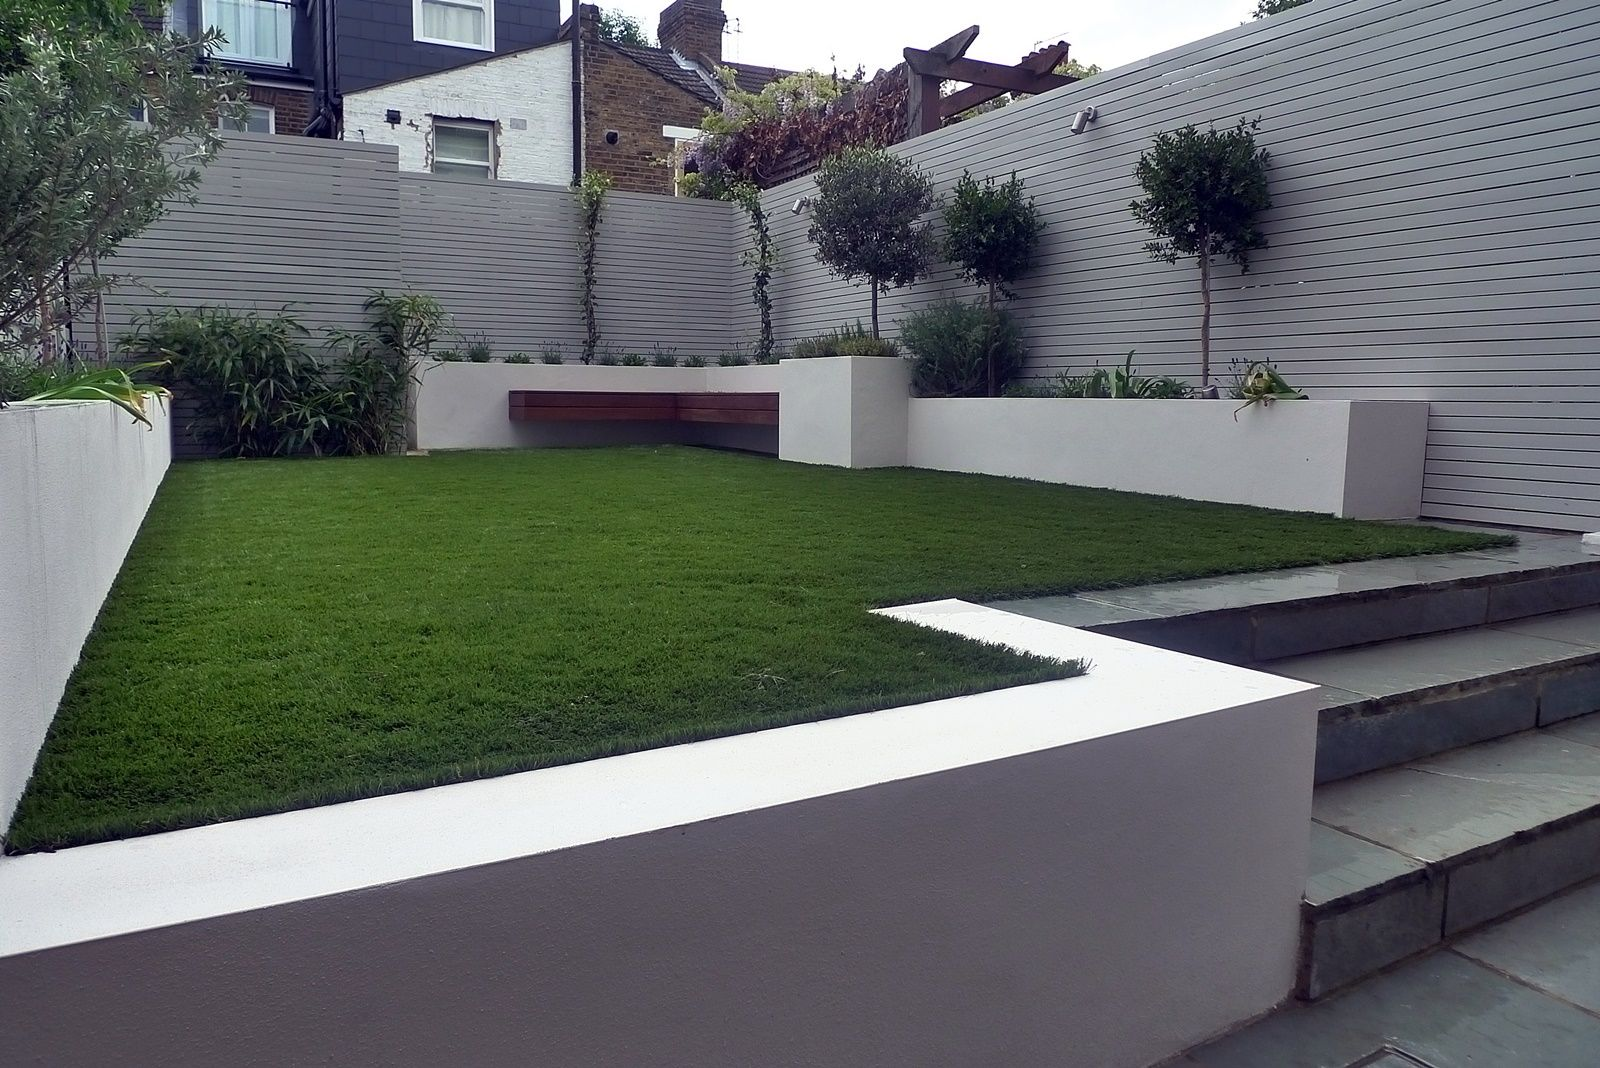 Garden Design Artificial Grass artificial grass easi grass grey painted fences modern garden